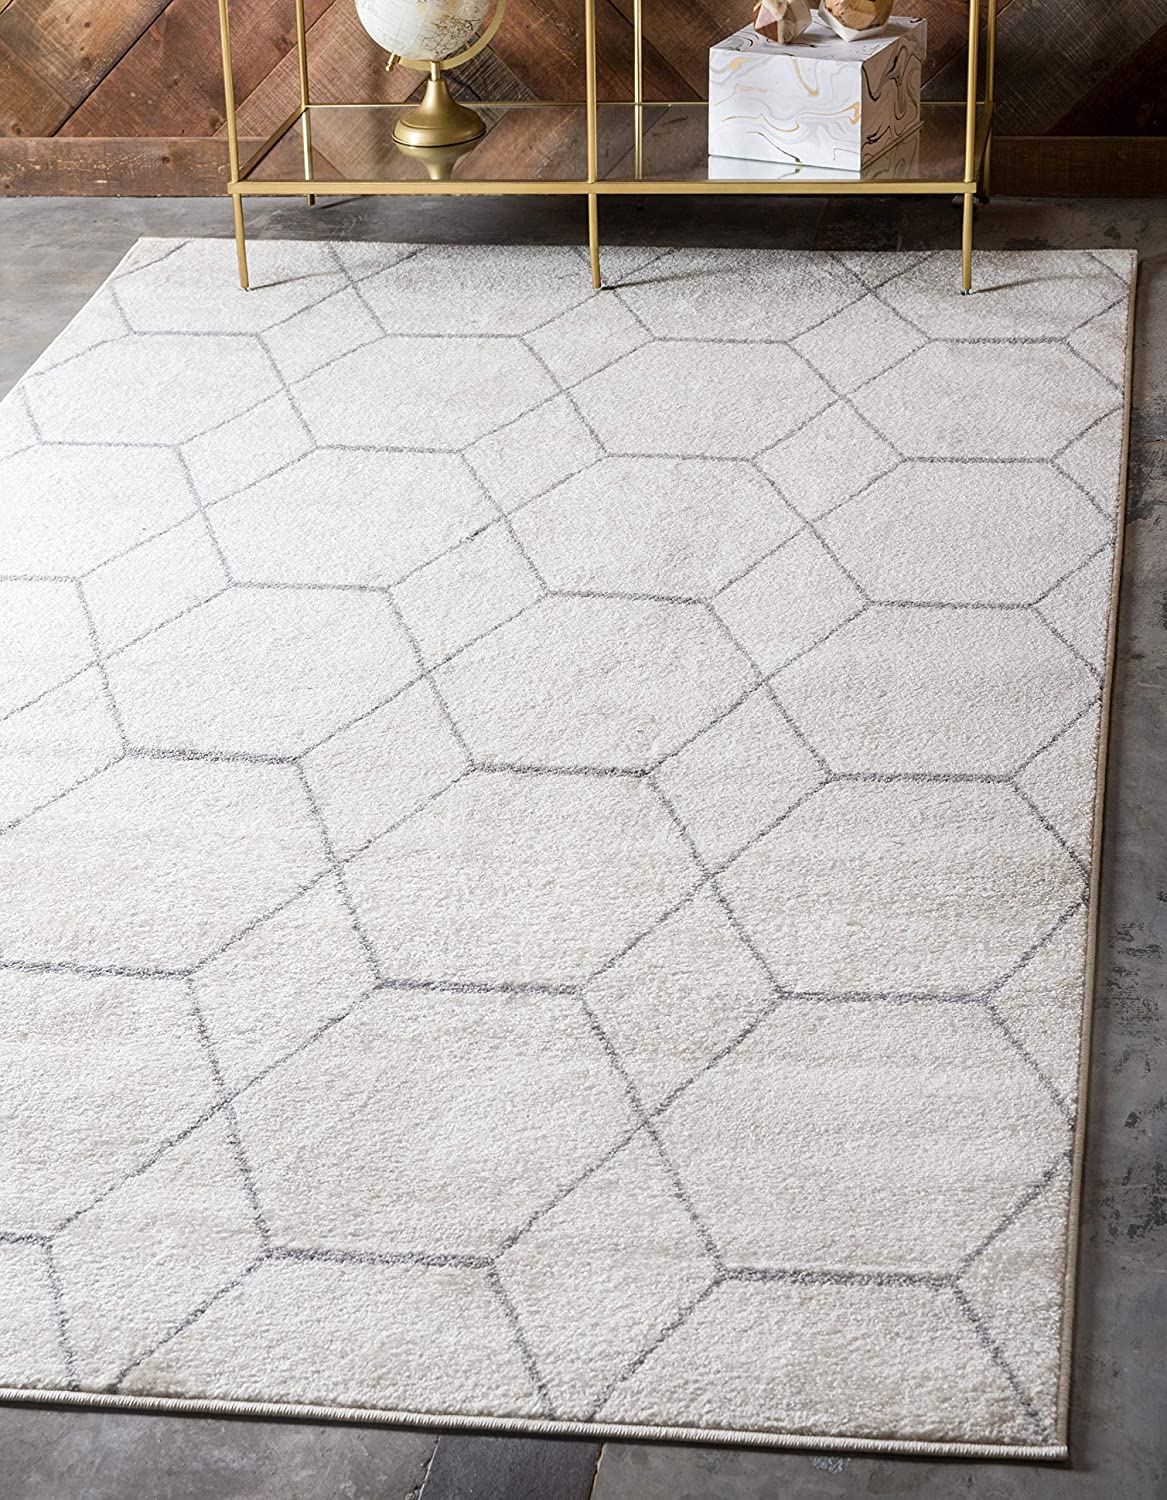 Unique Loom Trellis Frieze Collection Lattice Moroccan Geometric Modern Ivory Area Rug (4' 0 x 6' 0)